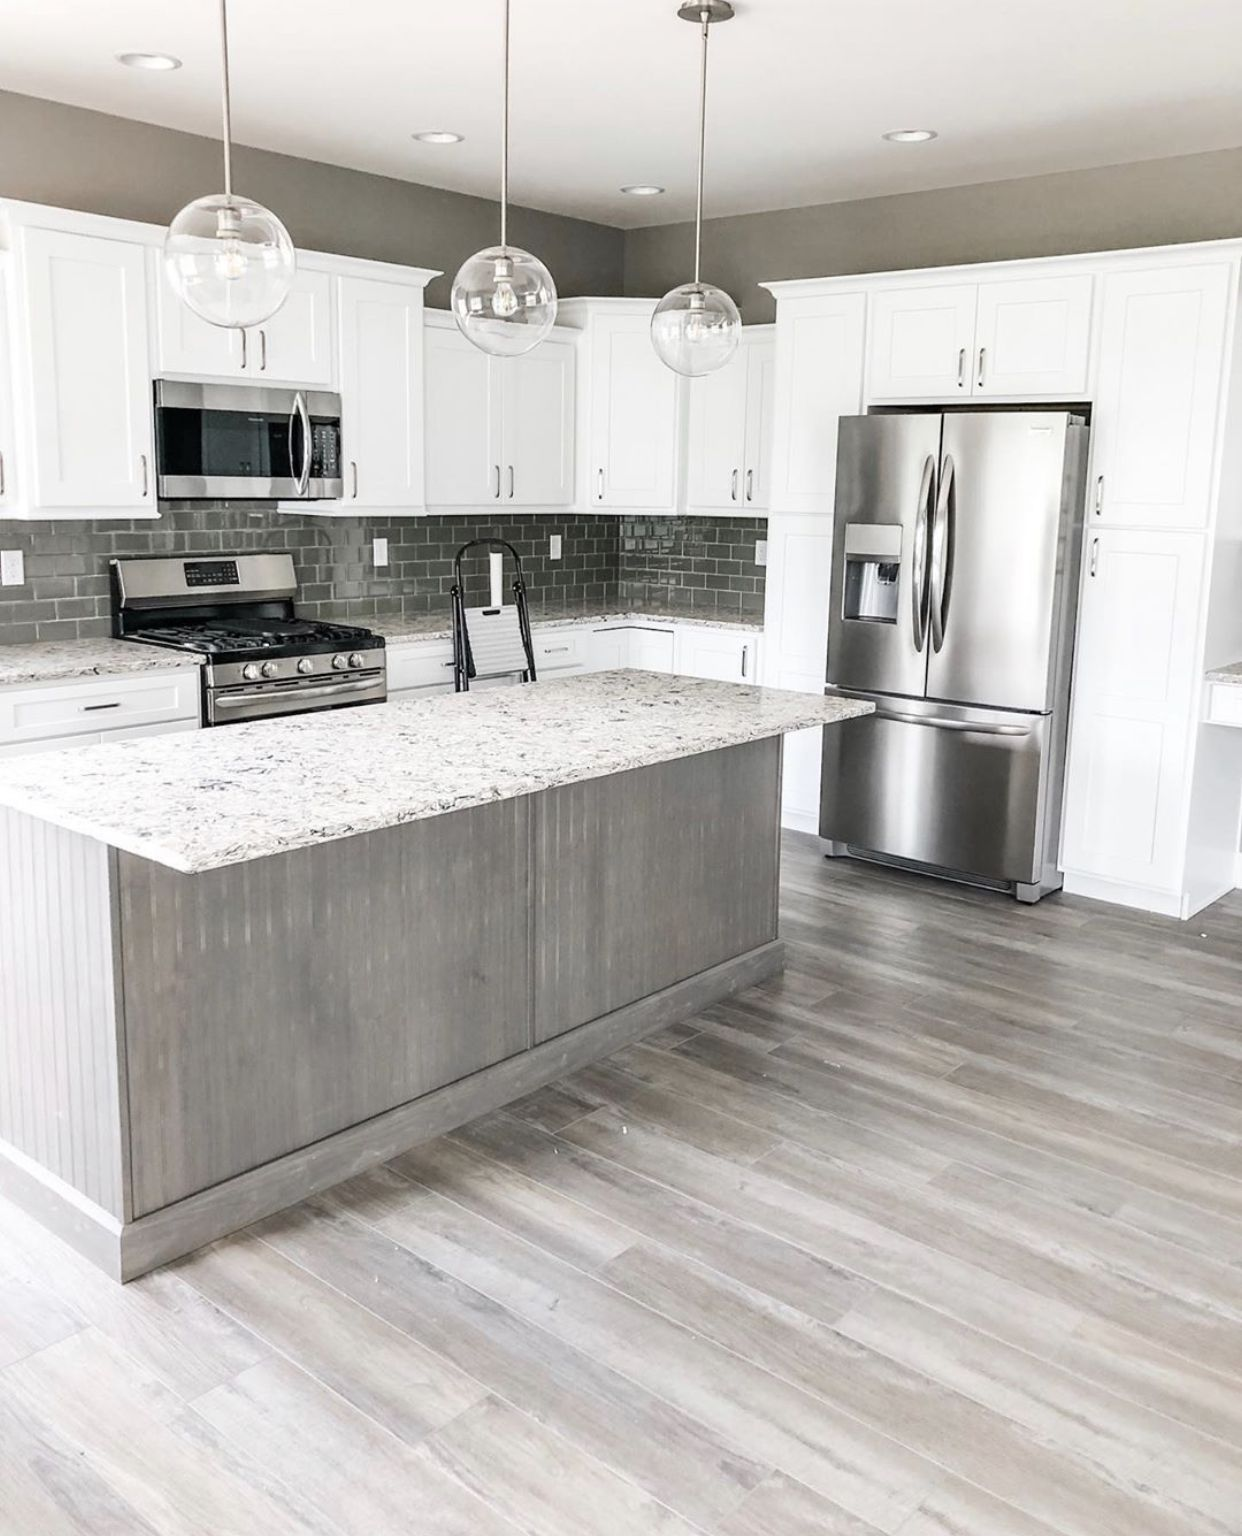 modern kitchen luxury vinyl plank flooring and glass subway tiled backsplash vinyl plank on kitchen remodel vinyl flooring id=17730